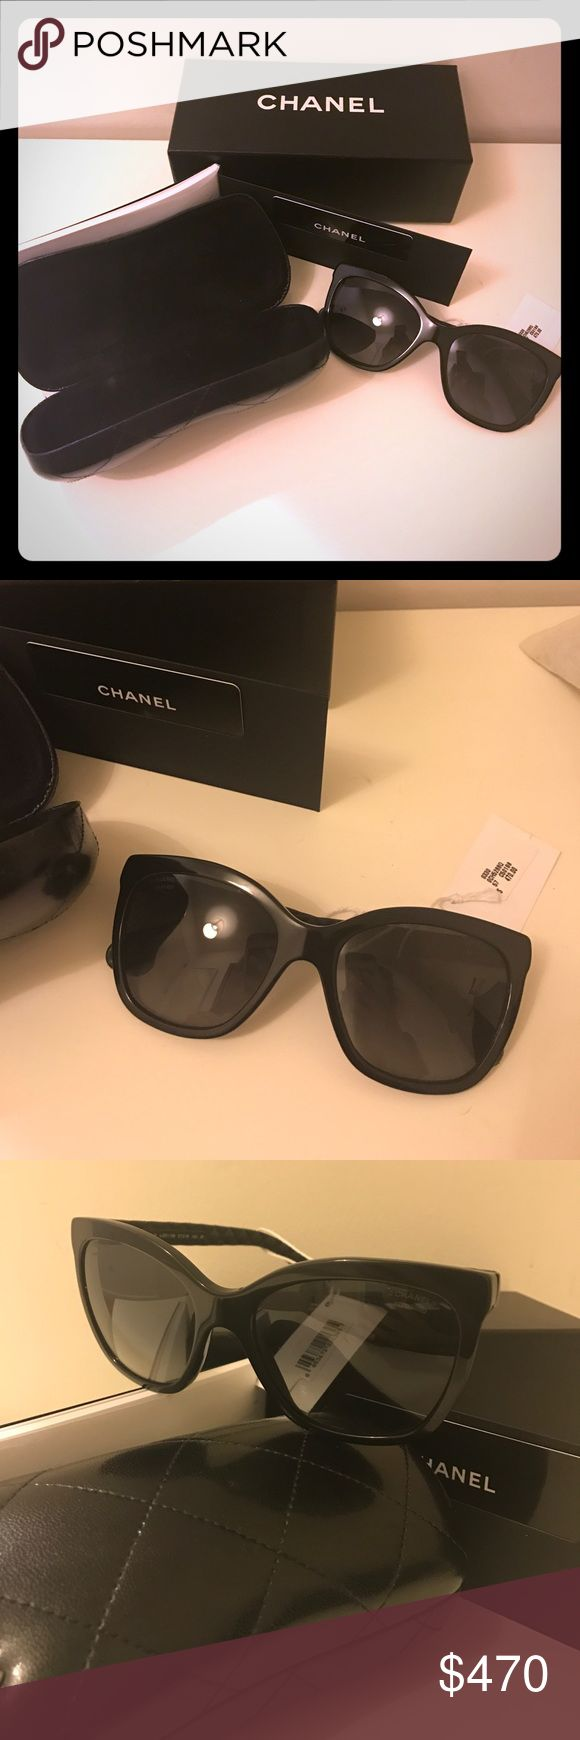 CHANEL sunglasses - NOT FOR SALE Chanel butterfly sunglasses CHANEL Accessories Sunglasses